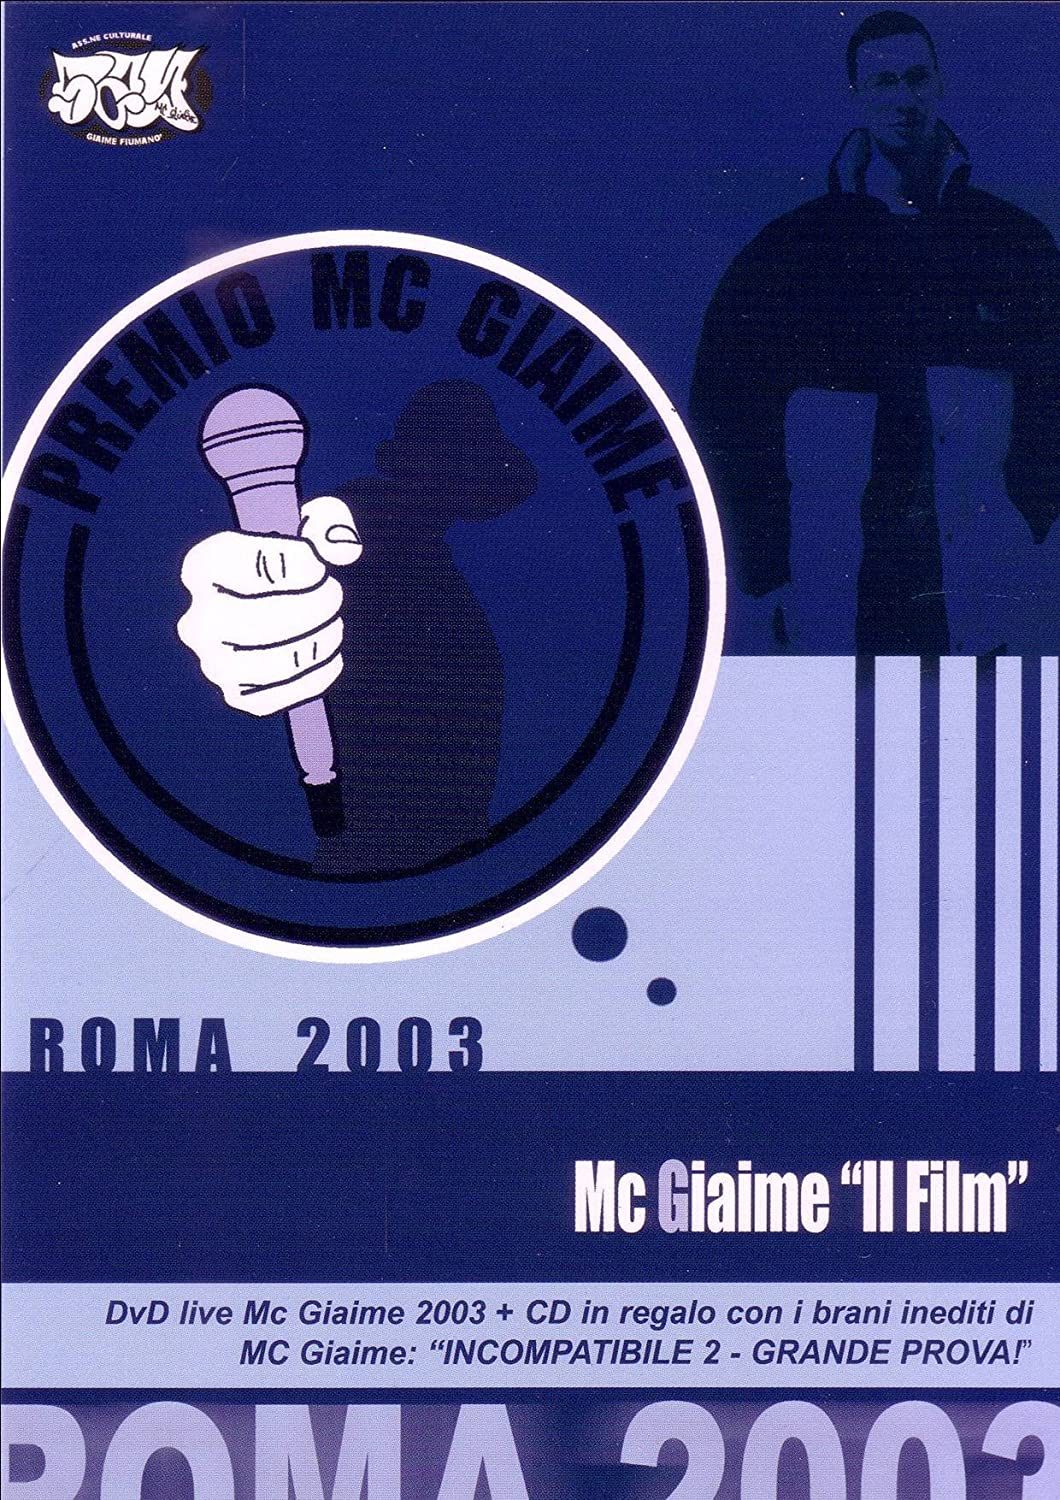 Amazon.com: mc giaime 2003 - il film (dvd + cd) dvd Italian Import: vari: Movies & TV